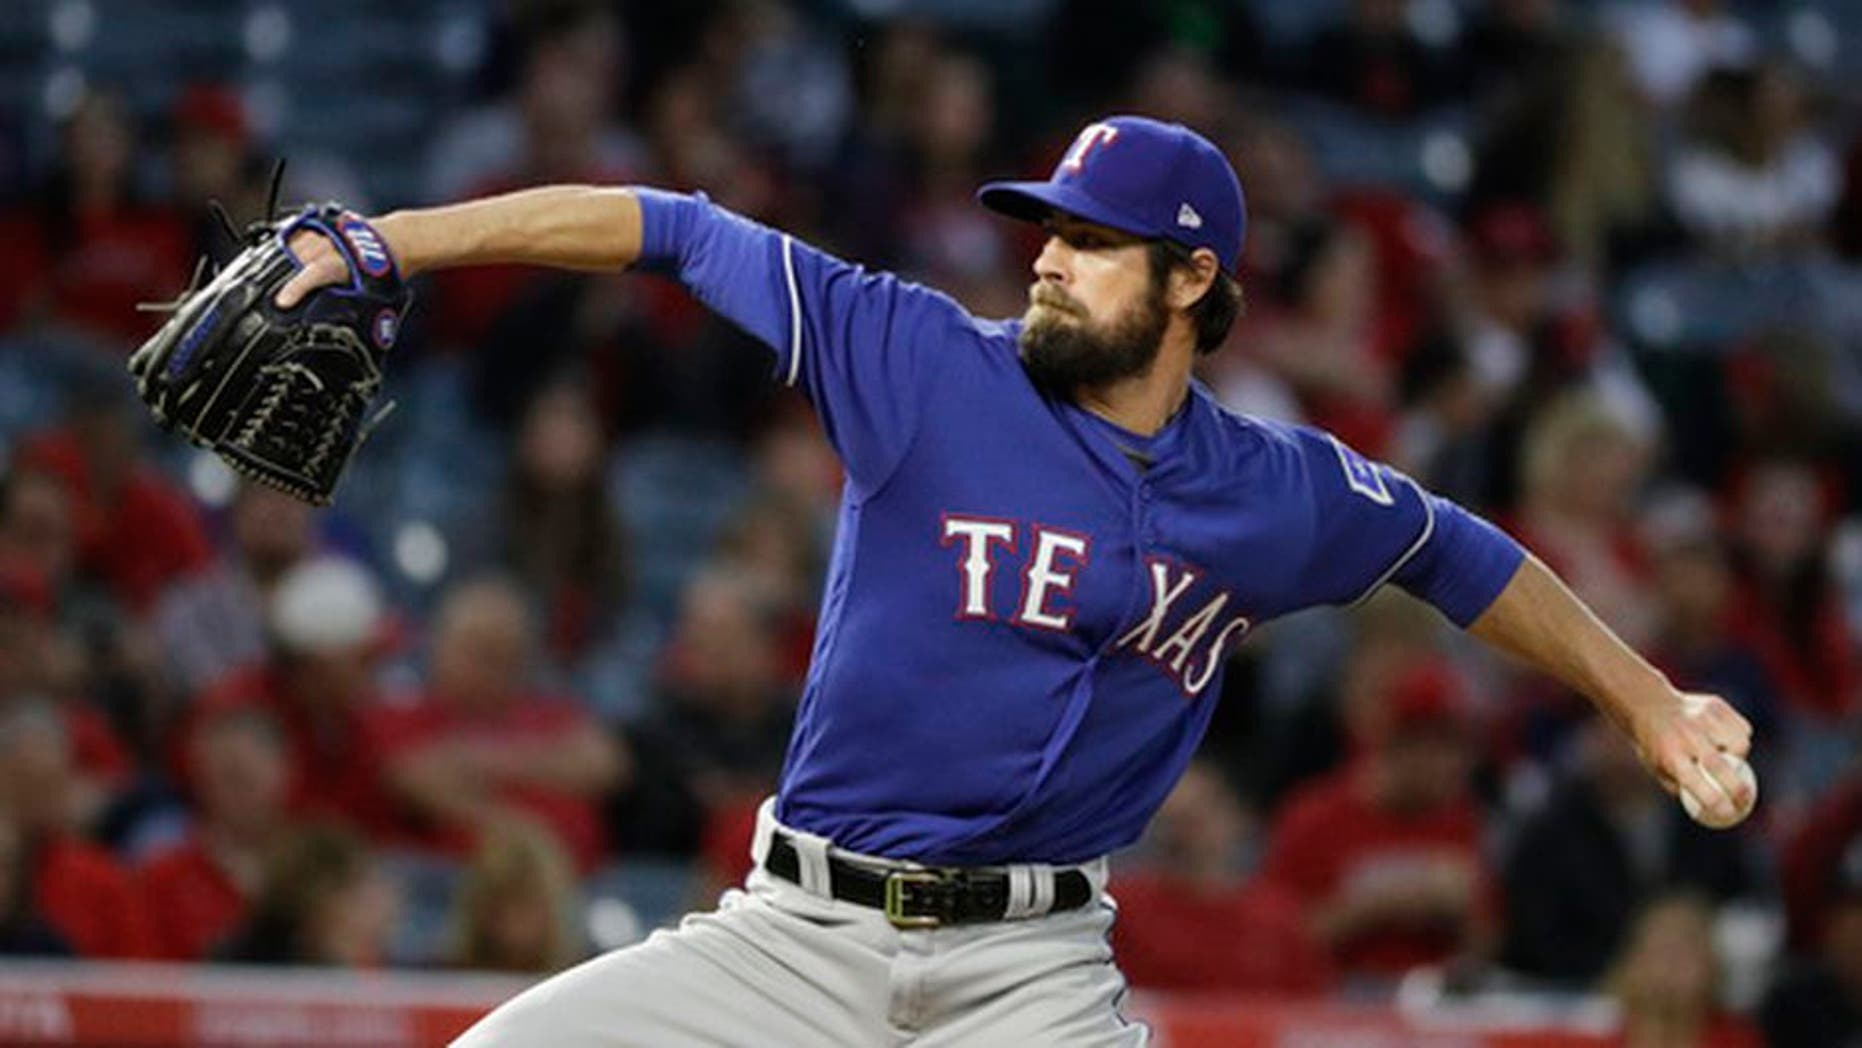 Texas Rangers starting pitcher Cole Hamels throws against the Los Angeles Angels during the first inning of a baseball game, Tuesday, April 11, 2017, in Anaheim, Calif. Cole Hamels makes his fourth start this season for Texas on Friday, April 21,, and the Rangers left-hander is still looking for his first decision when the Rangers host Kansas City. (AP Photo/Jae C. Hong)